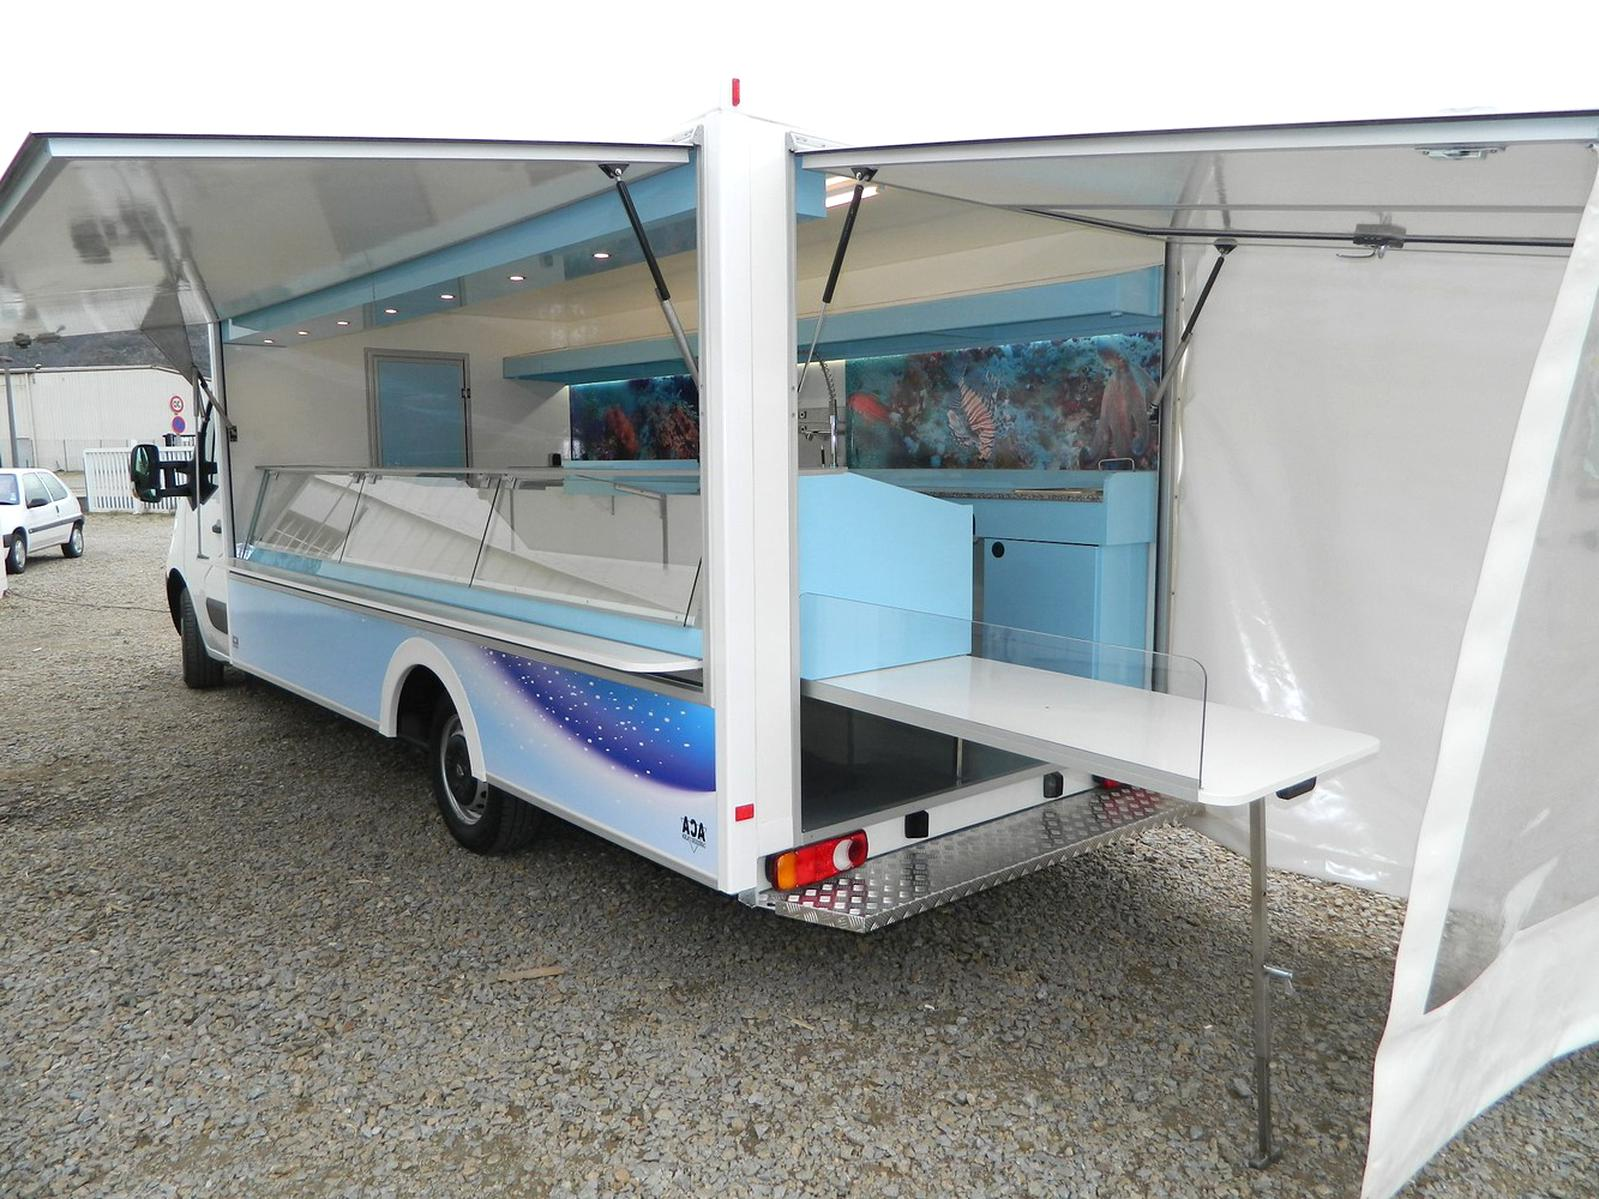 Camion Magasin Poissonnerie D Occasion